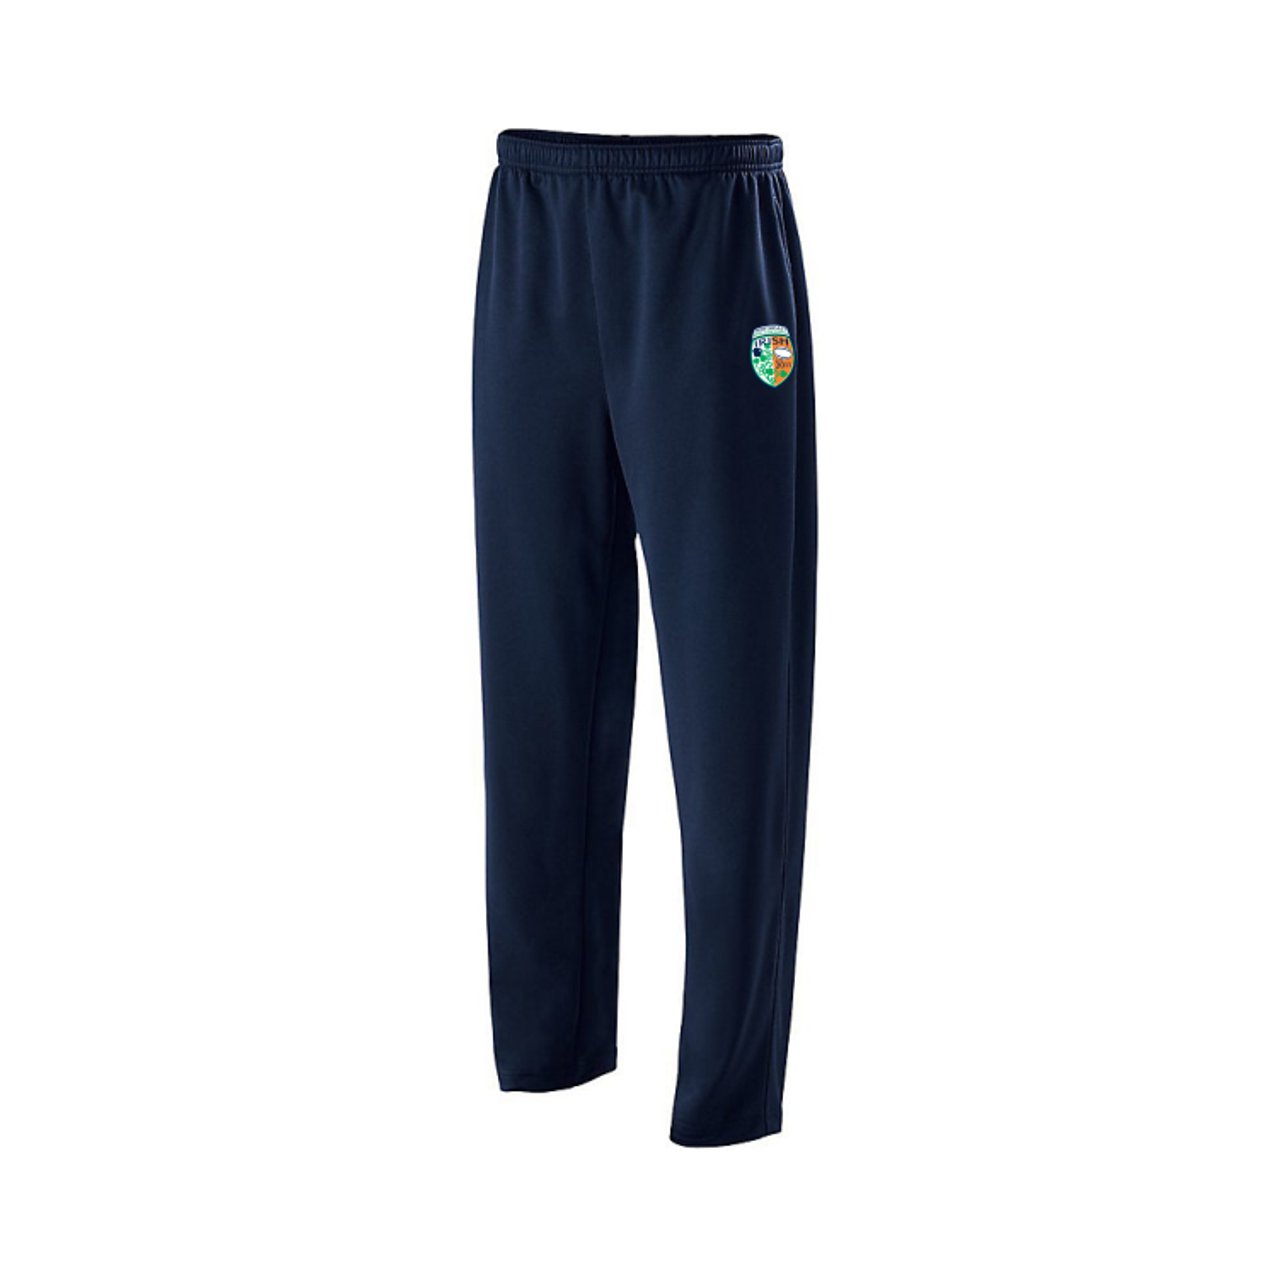 NEP Irish Performance Fleece Pants